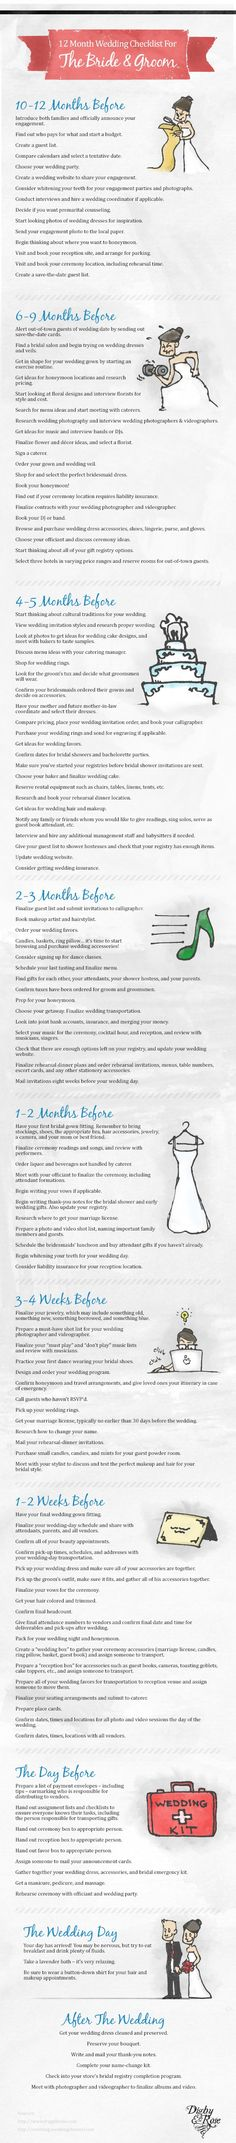 12 Months Complete Checklist Wedding Planning Guide [Infographic]